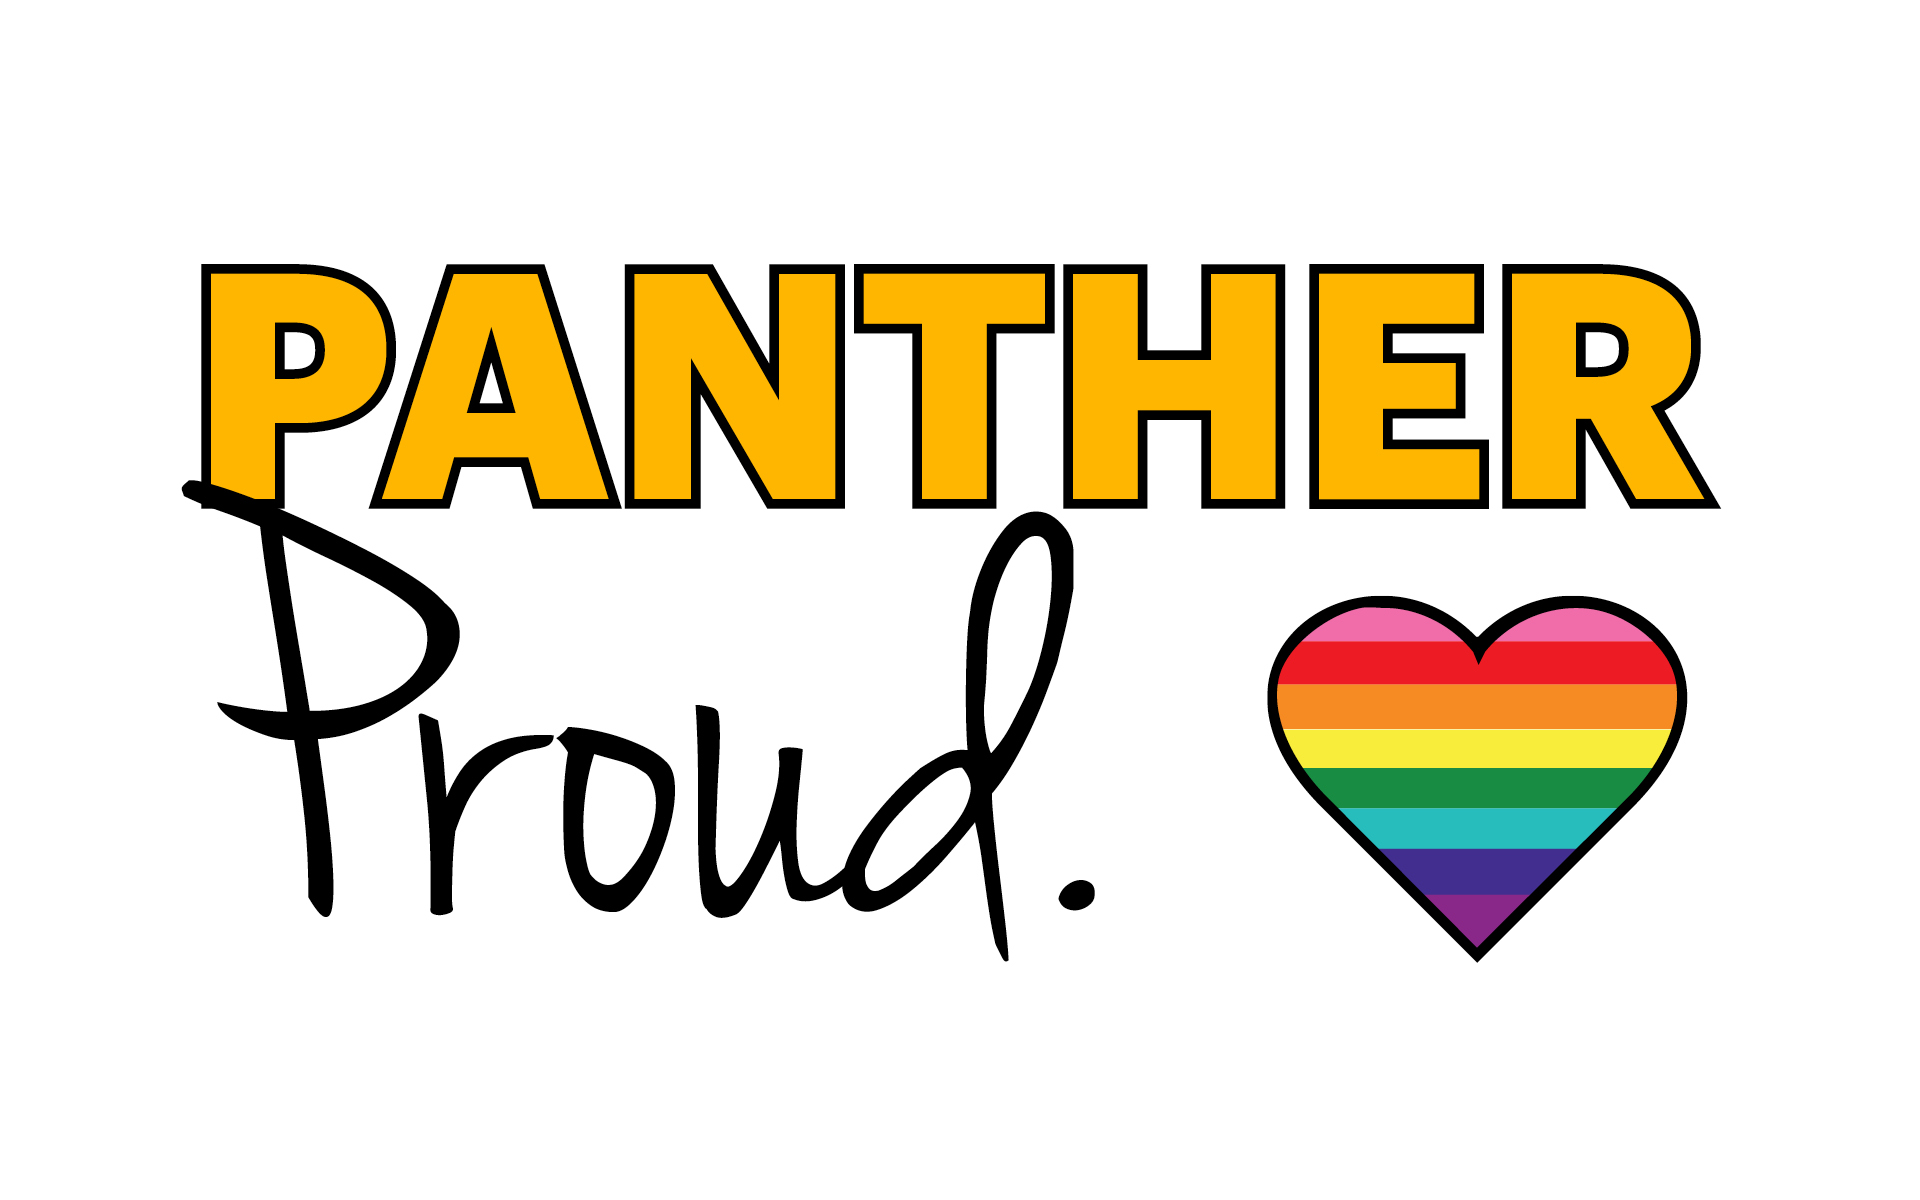 Desktop 16x10 - Adelphi Panther Pride Wallpaper